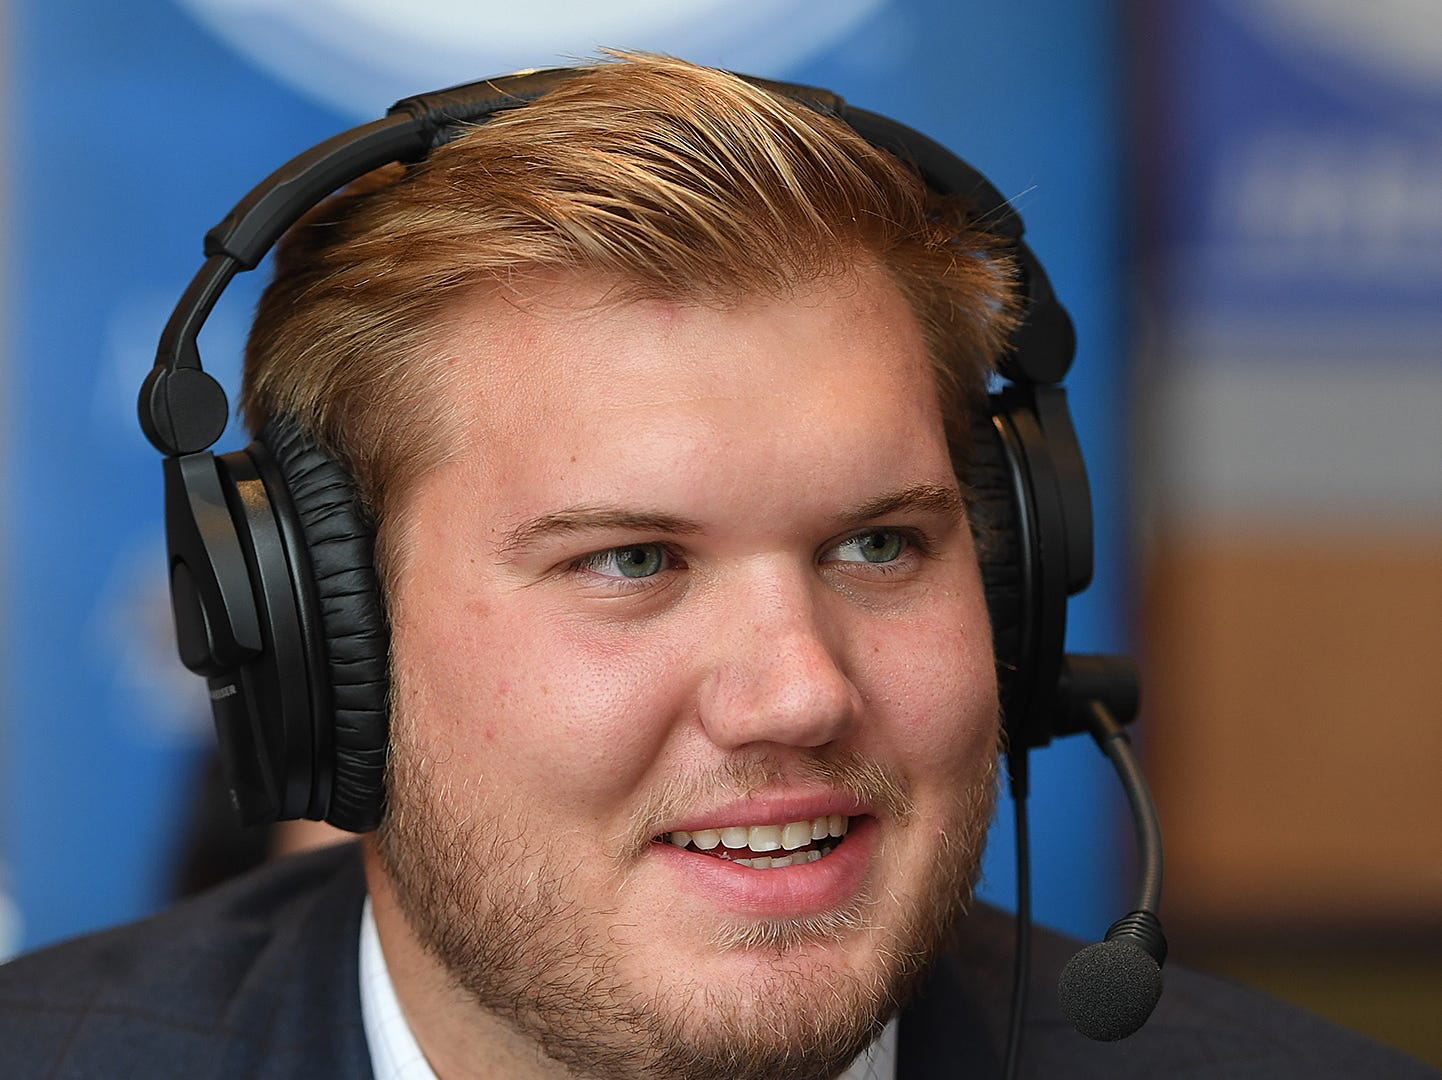 Clemson offensive lineman Mitch Hyatt is interviewed on radio row at the ACC Football Kickoff in Charlotte, N.C., Thursday, July 19, 2018.